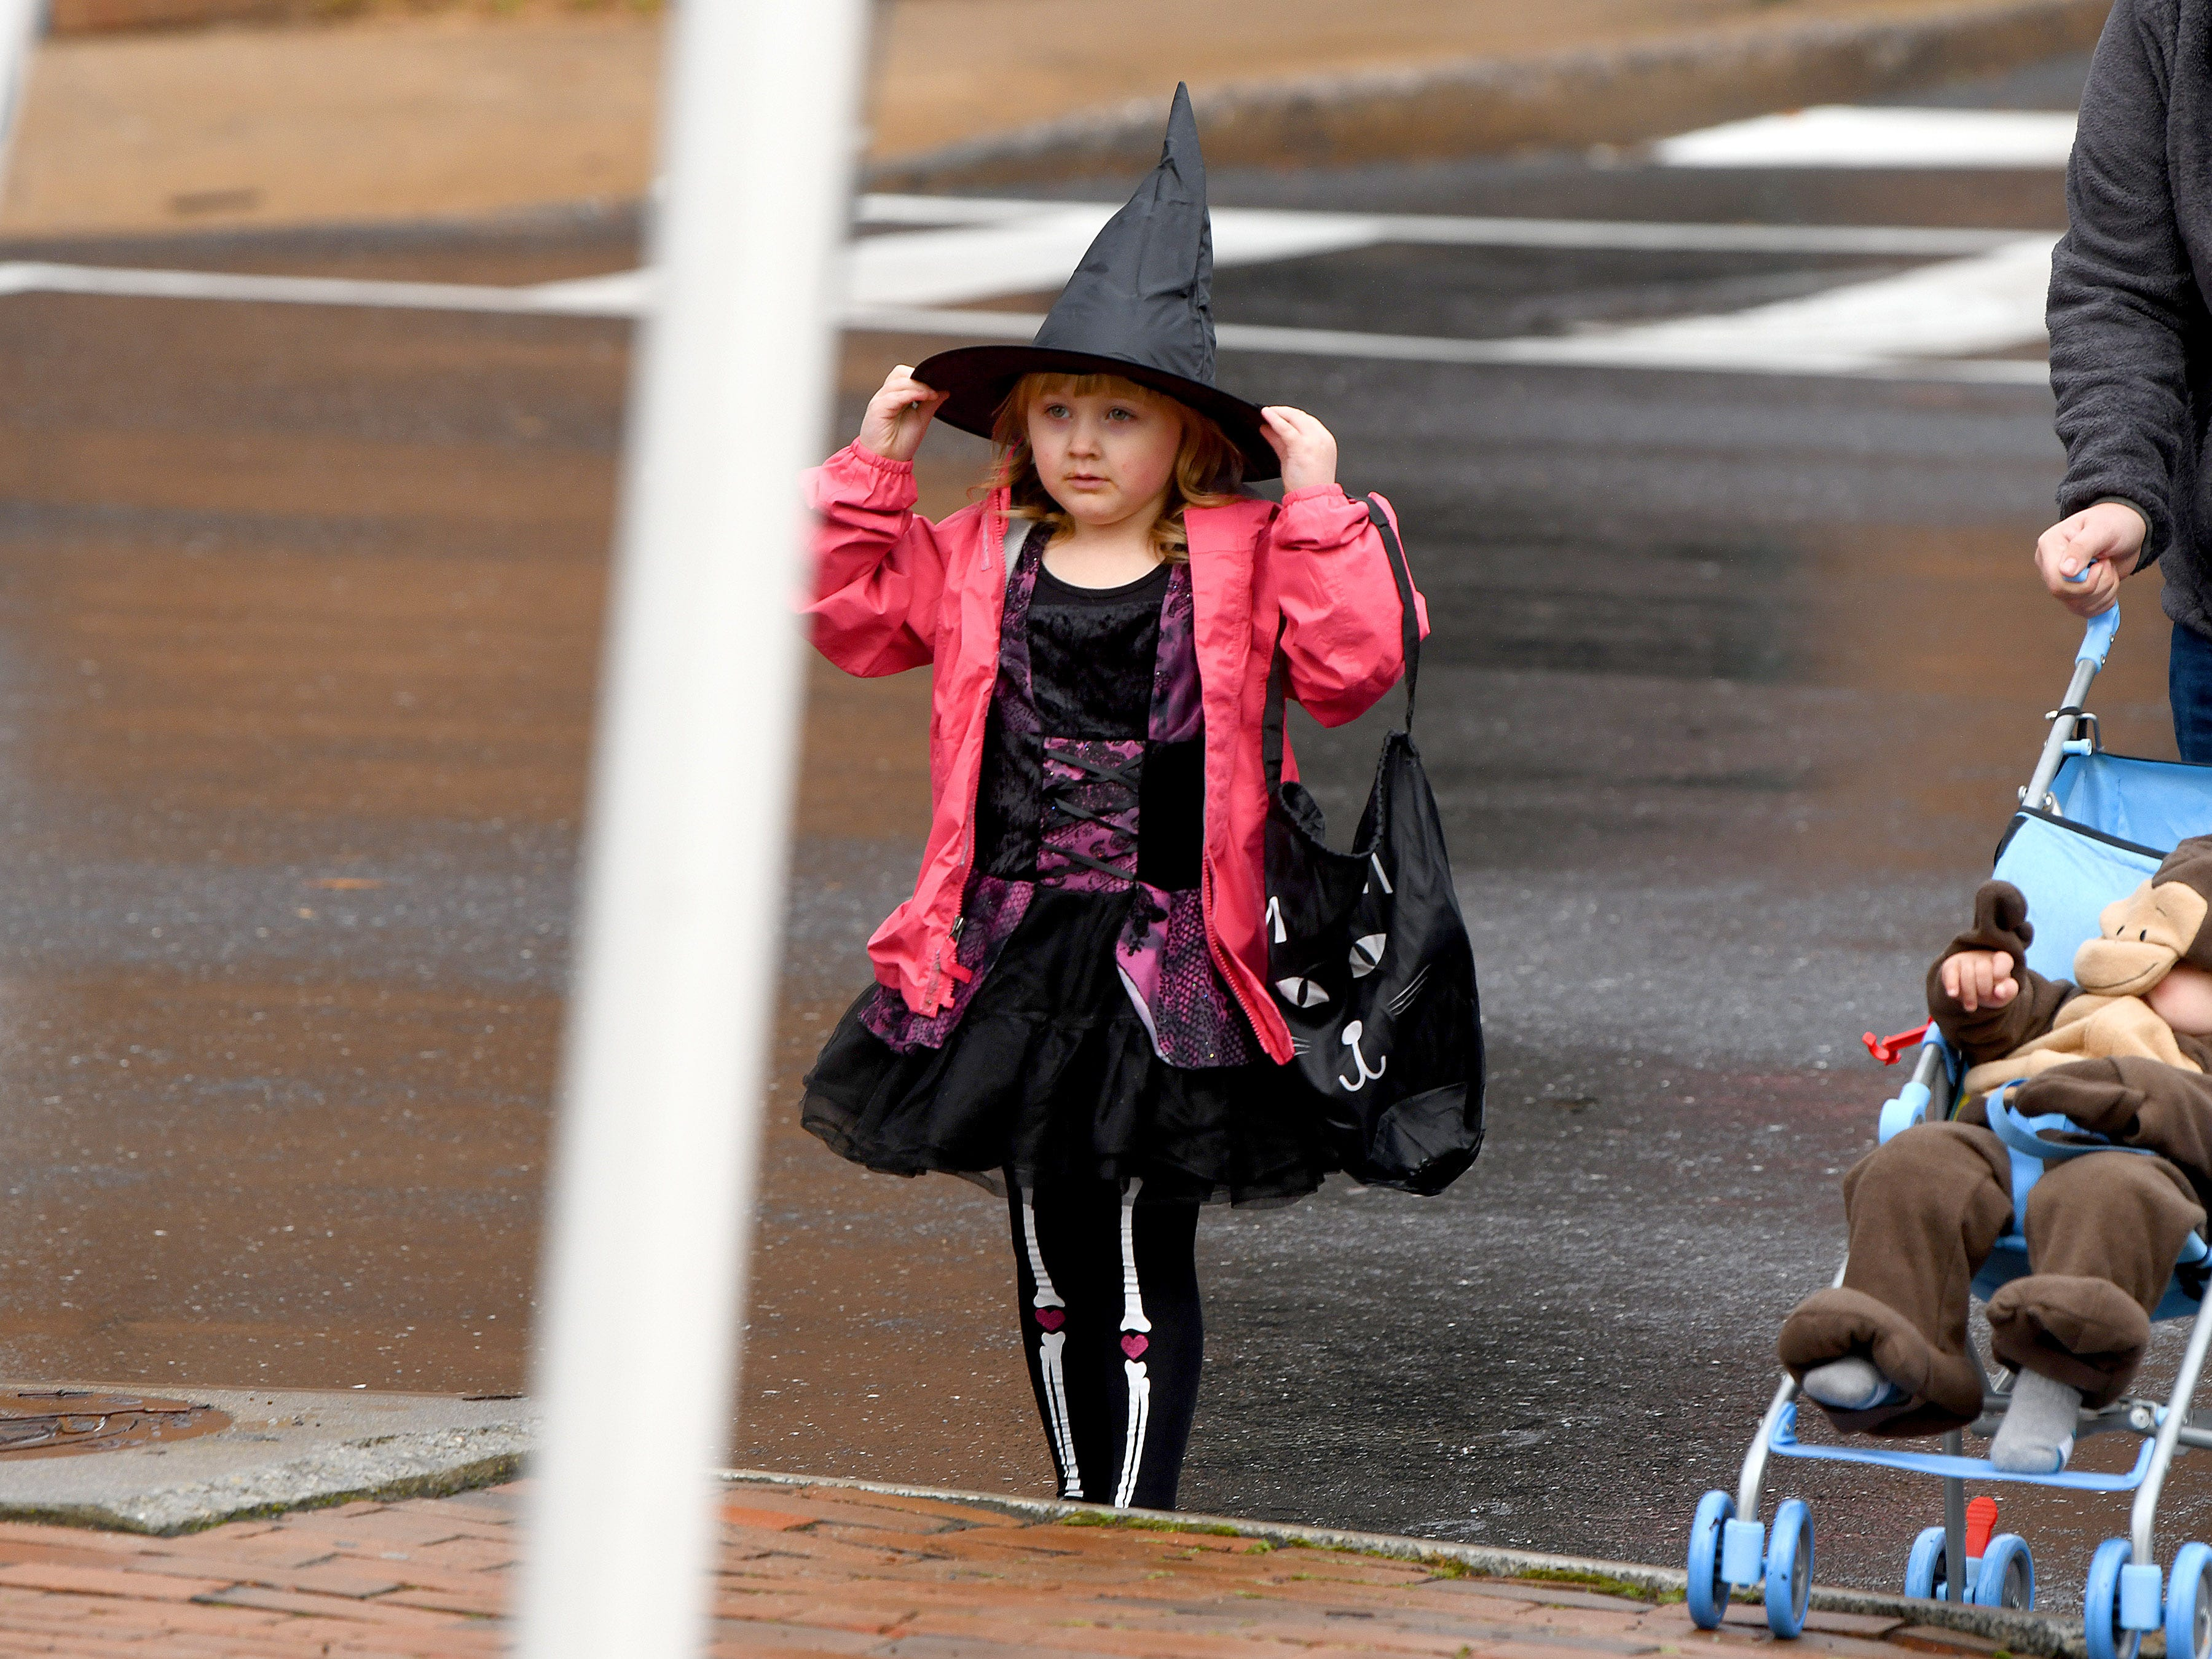 A young witch checks her hat as trick-or-treating begins in downtown Staunton on Saturday, Oct. 27, 2018.